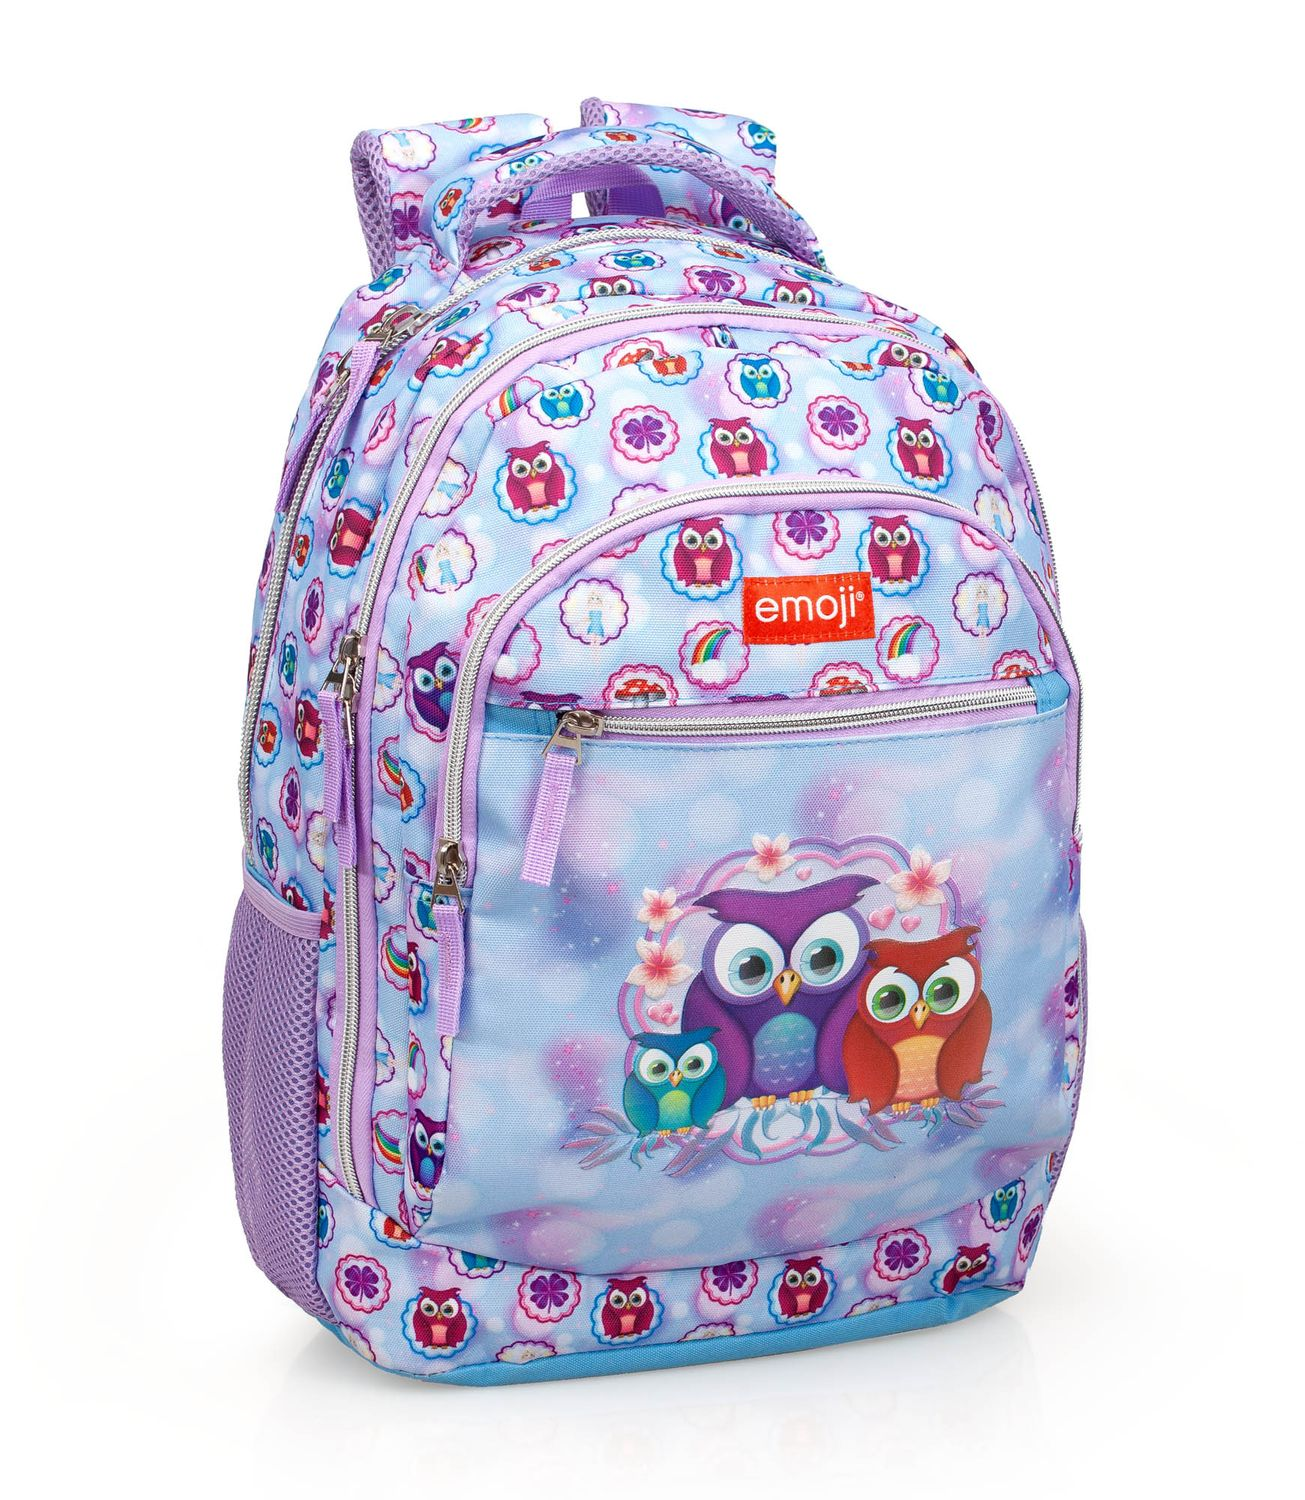 Triple Backpack Rucksack EMOJI Official PINK OWLS – image 1